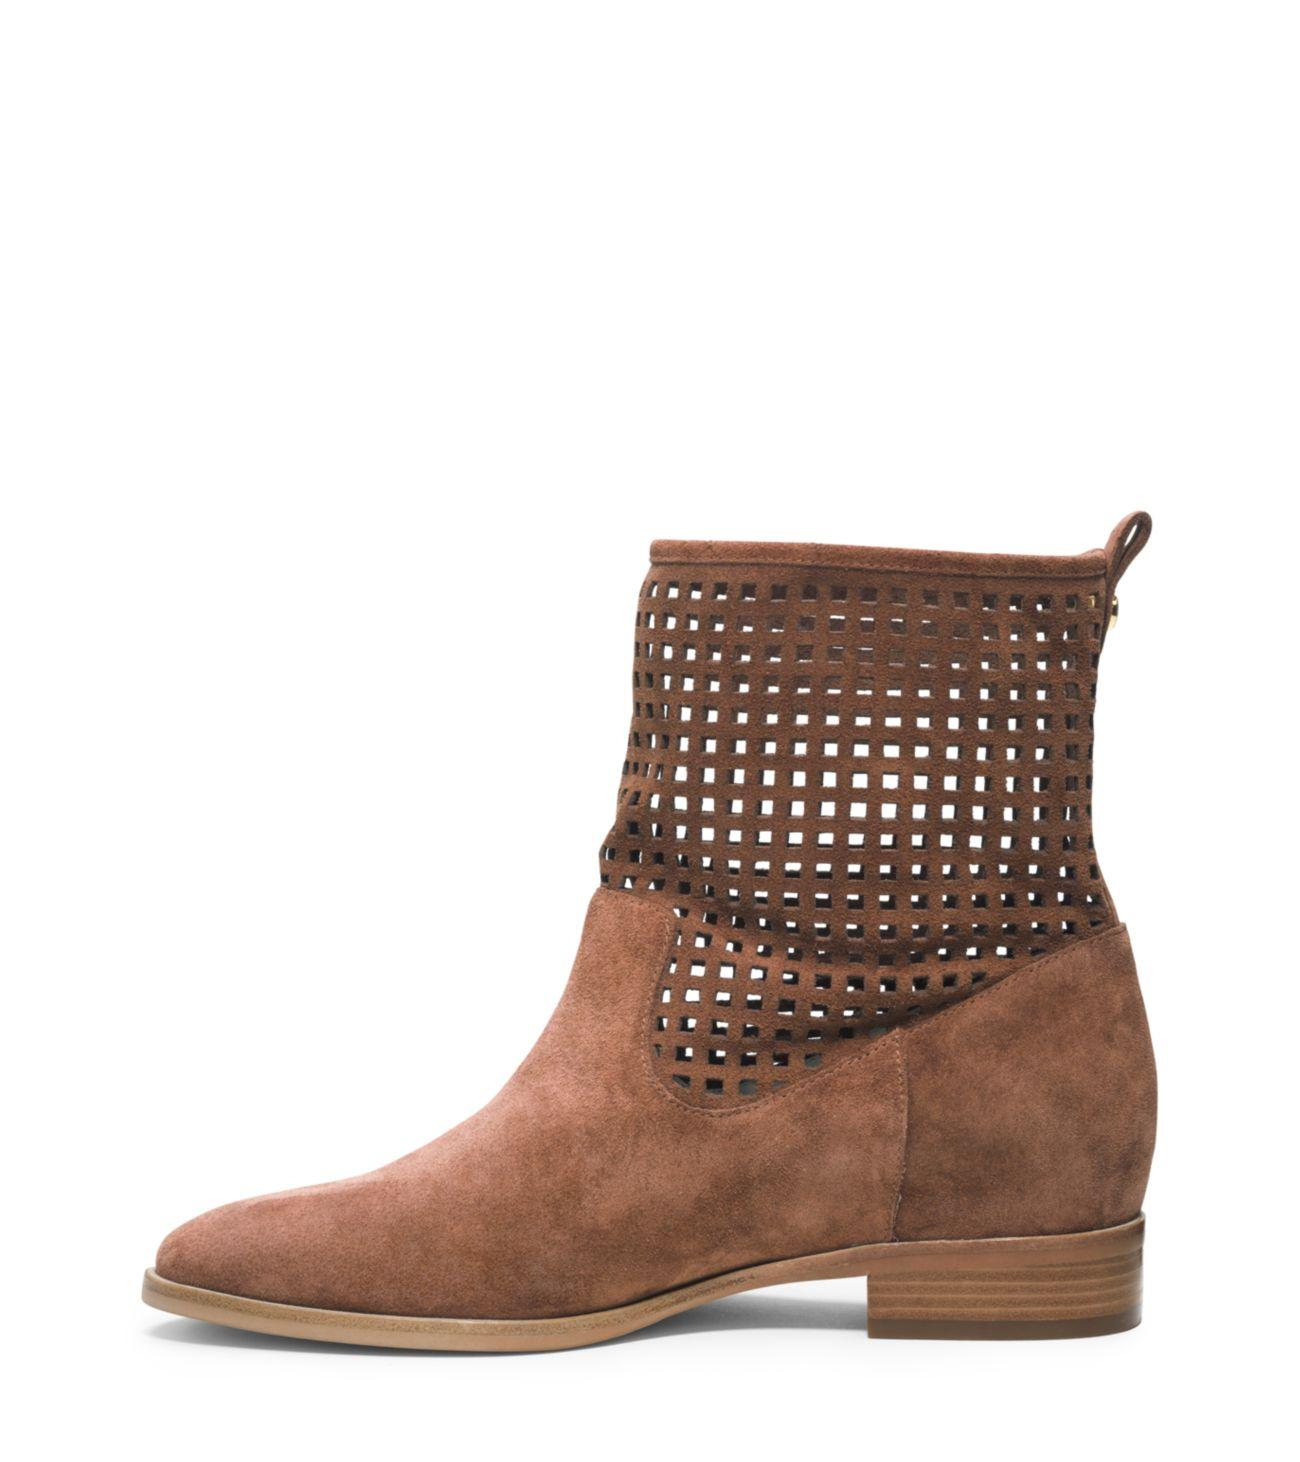 Michael Kors Graham Suede Ankle Boot in Brown